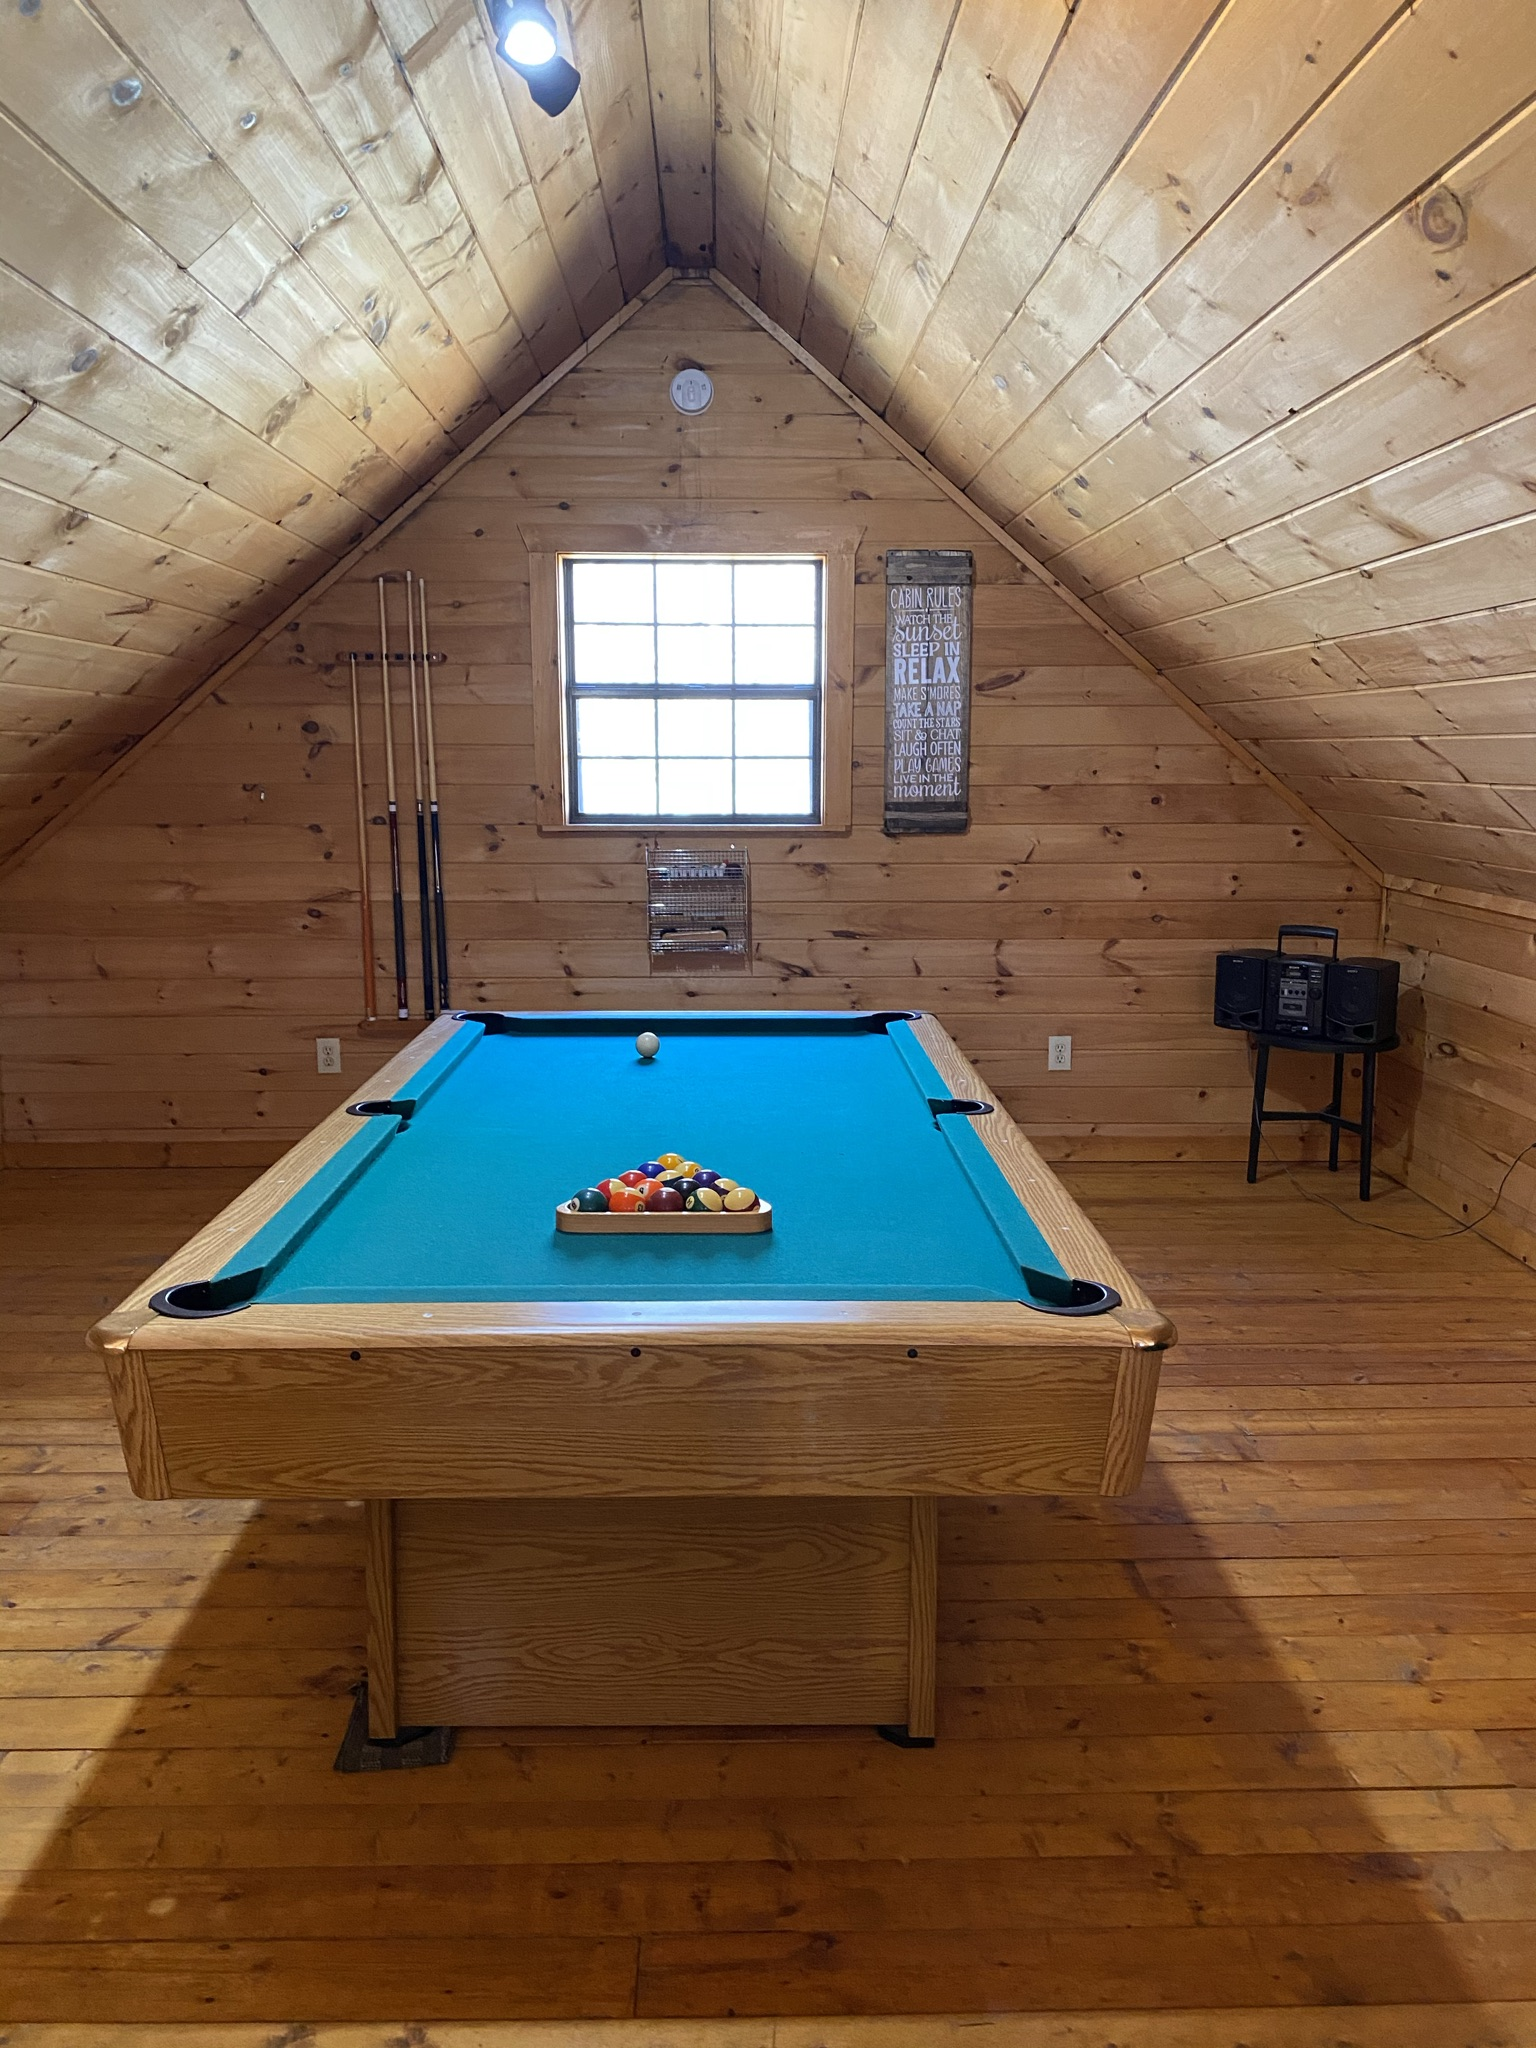 Test your skills at the pool table in the loft.